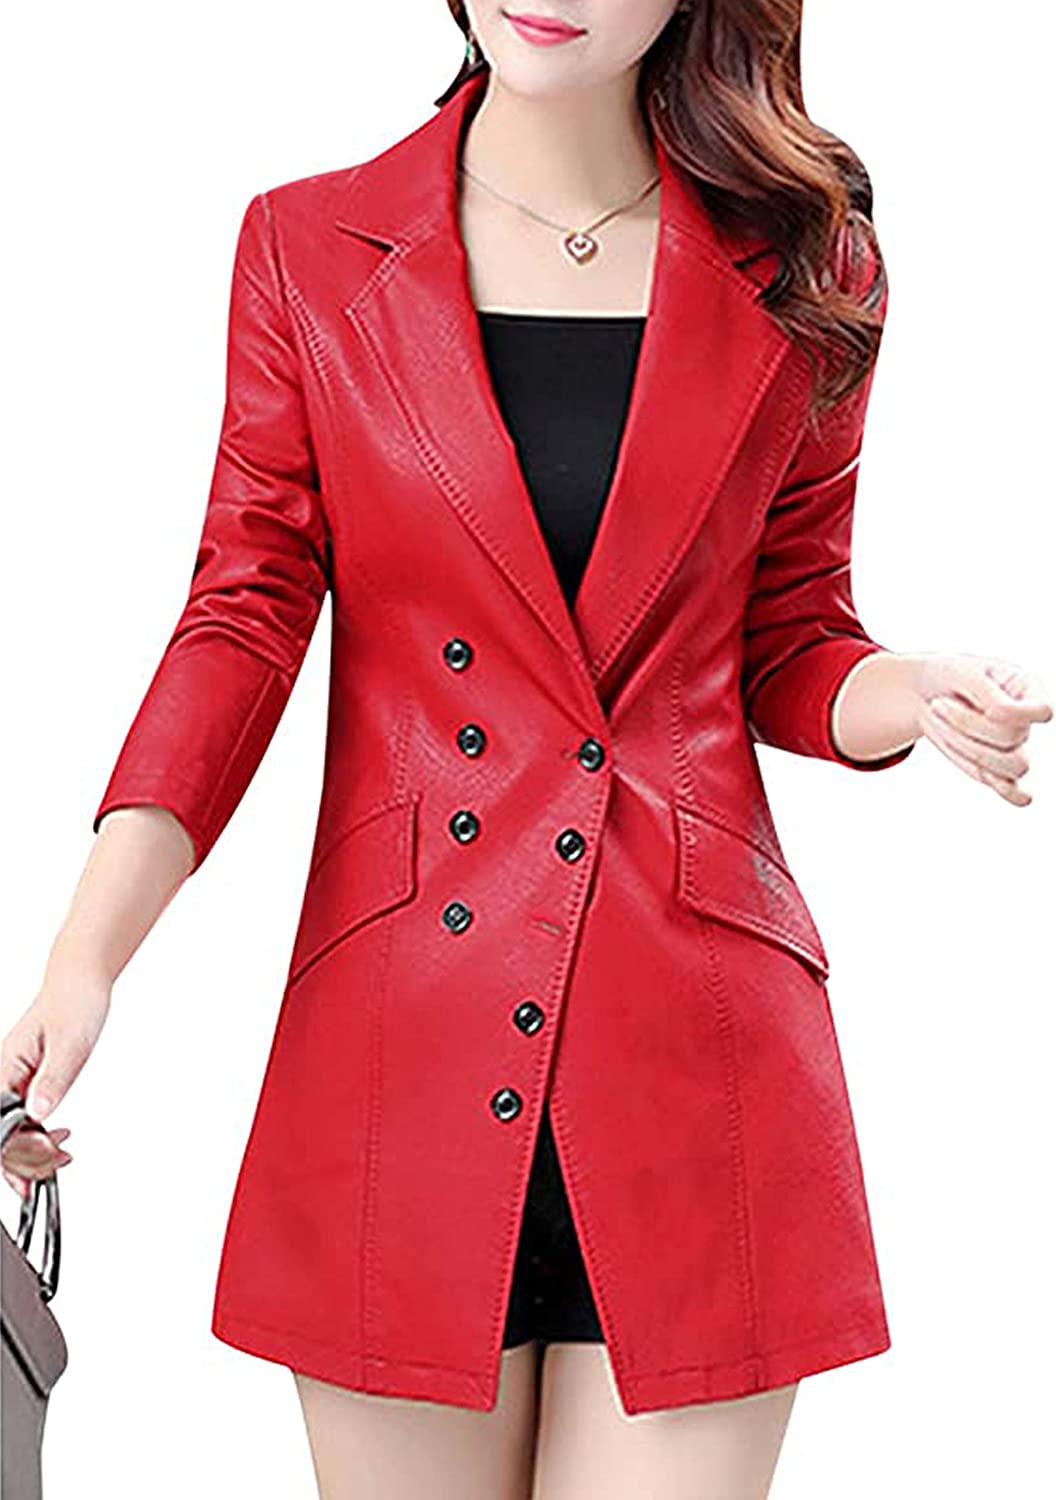 Tanming Women's Button Front Faux Leather Ranking TOP11 Coat Jacket Large special price Blazer